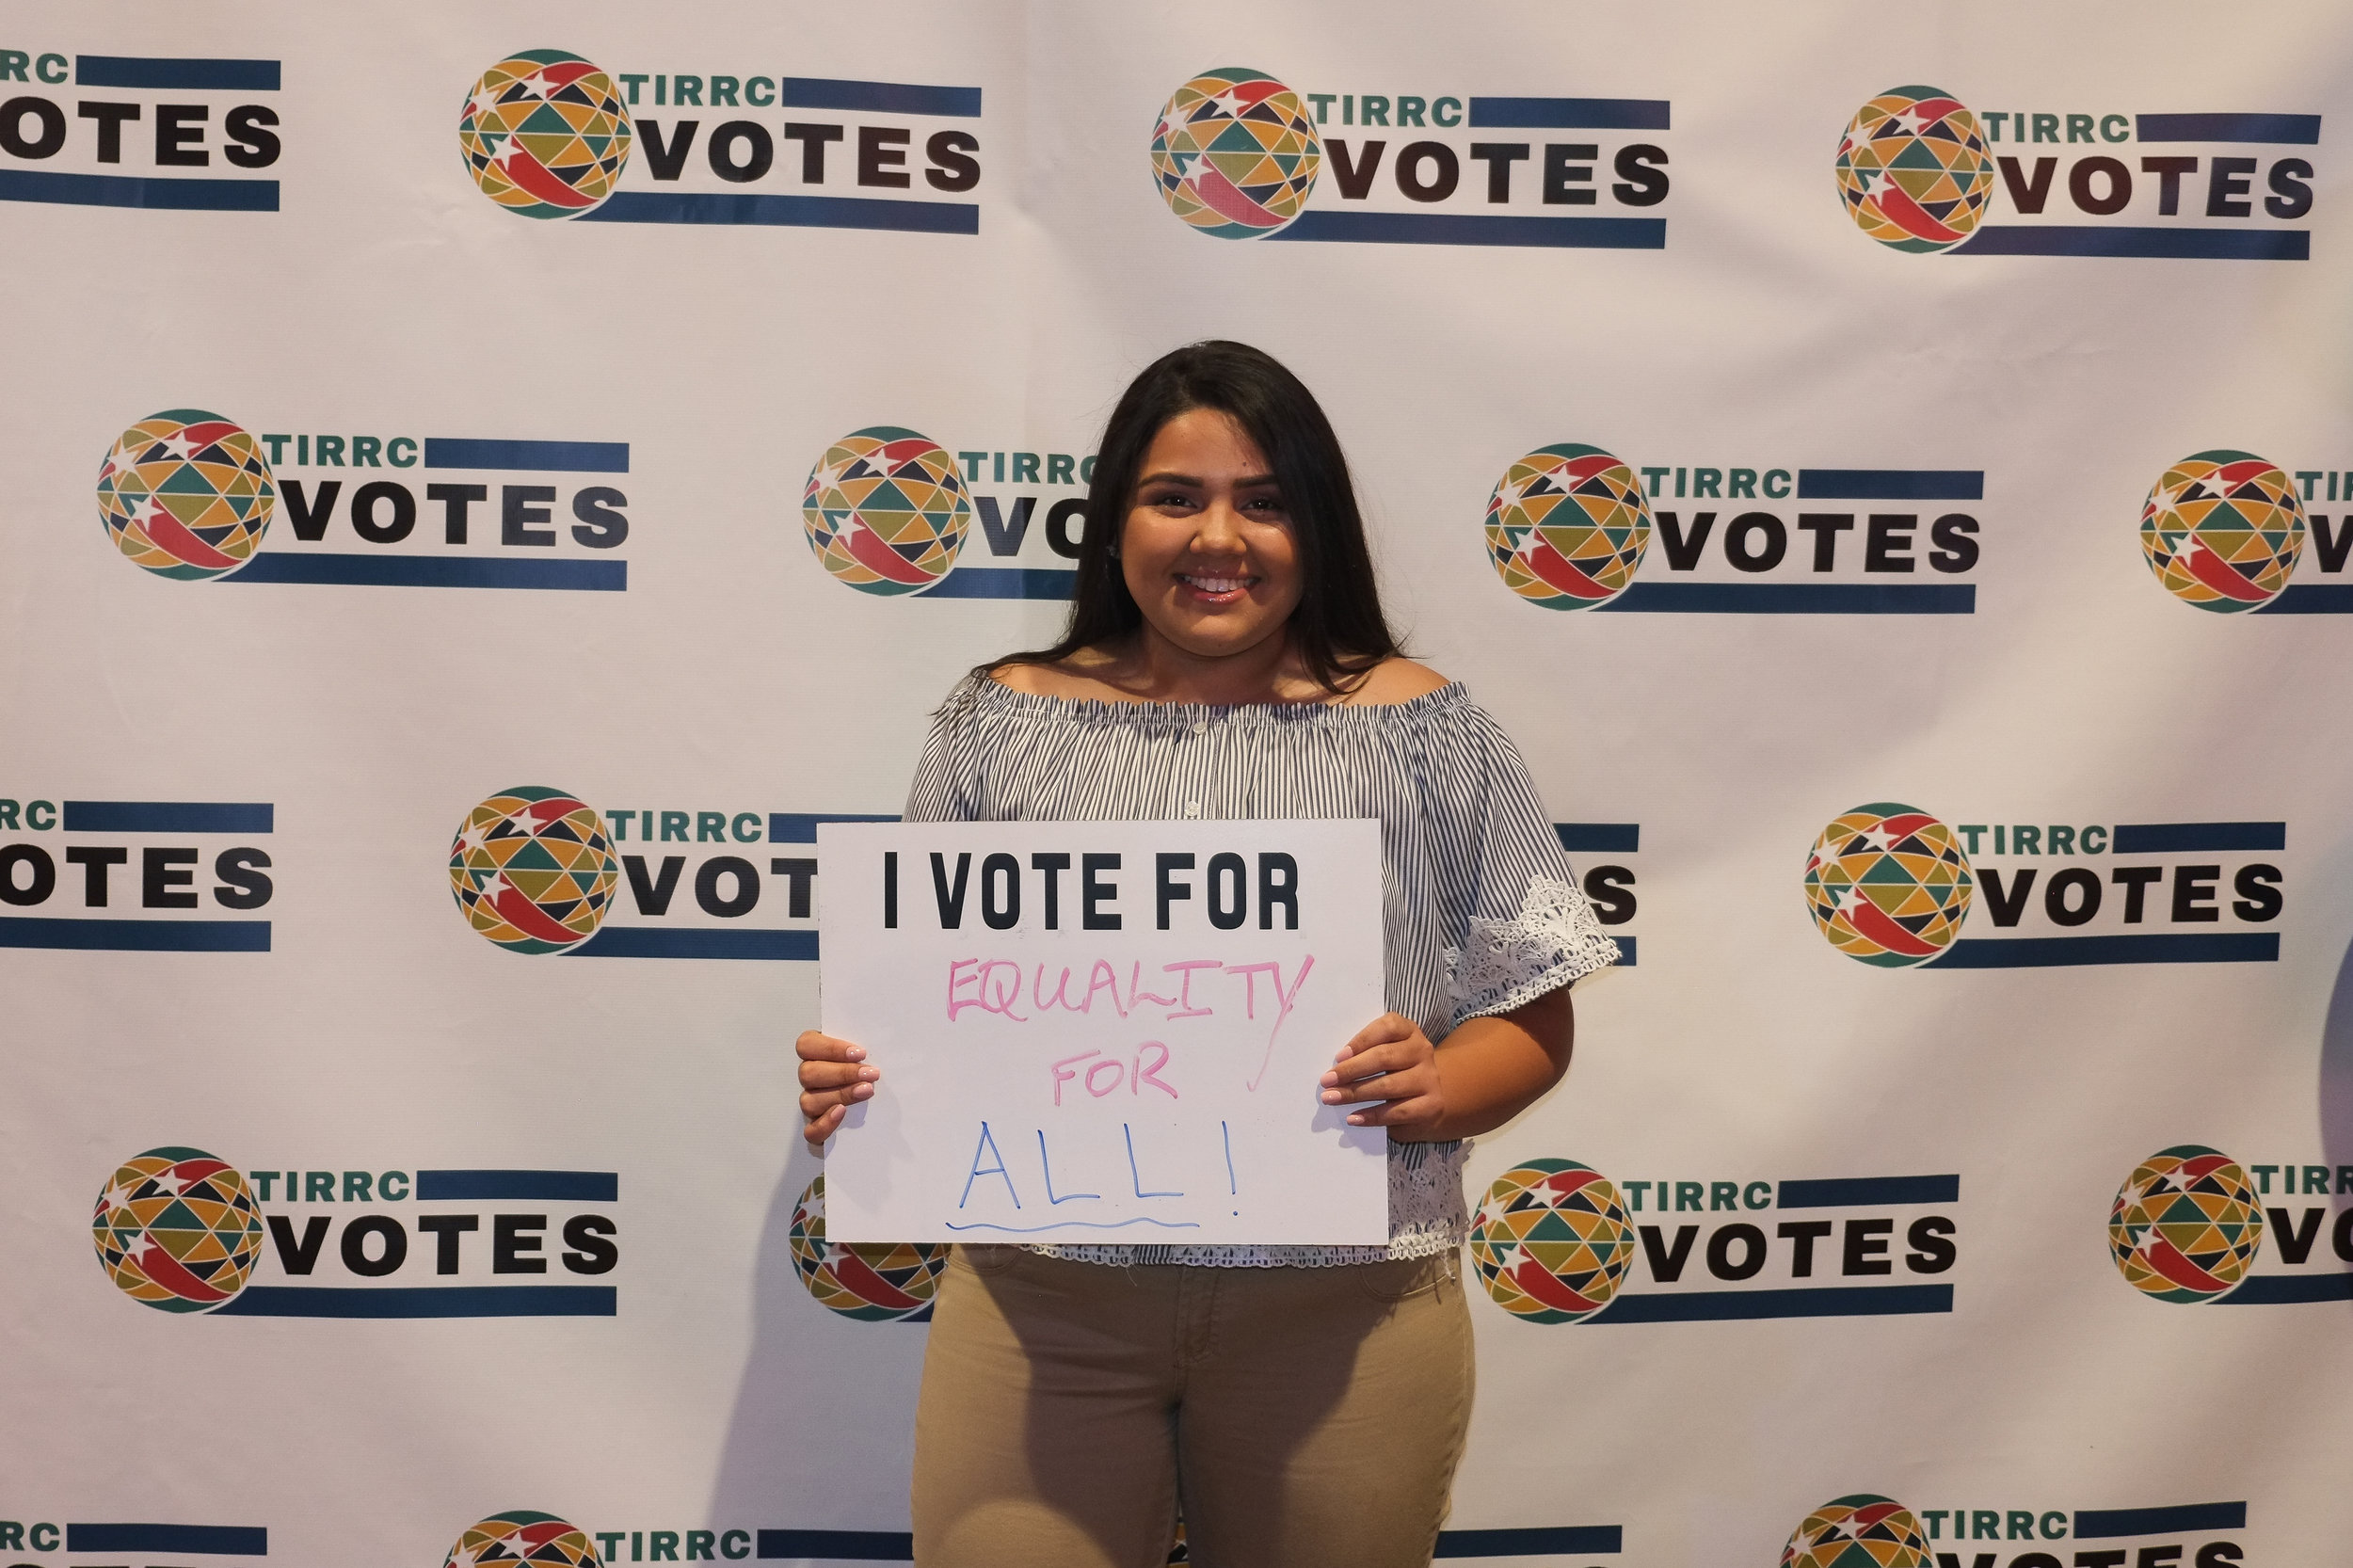 TIRRCVotes-PhotoBooth-40.jpg